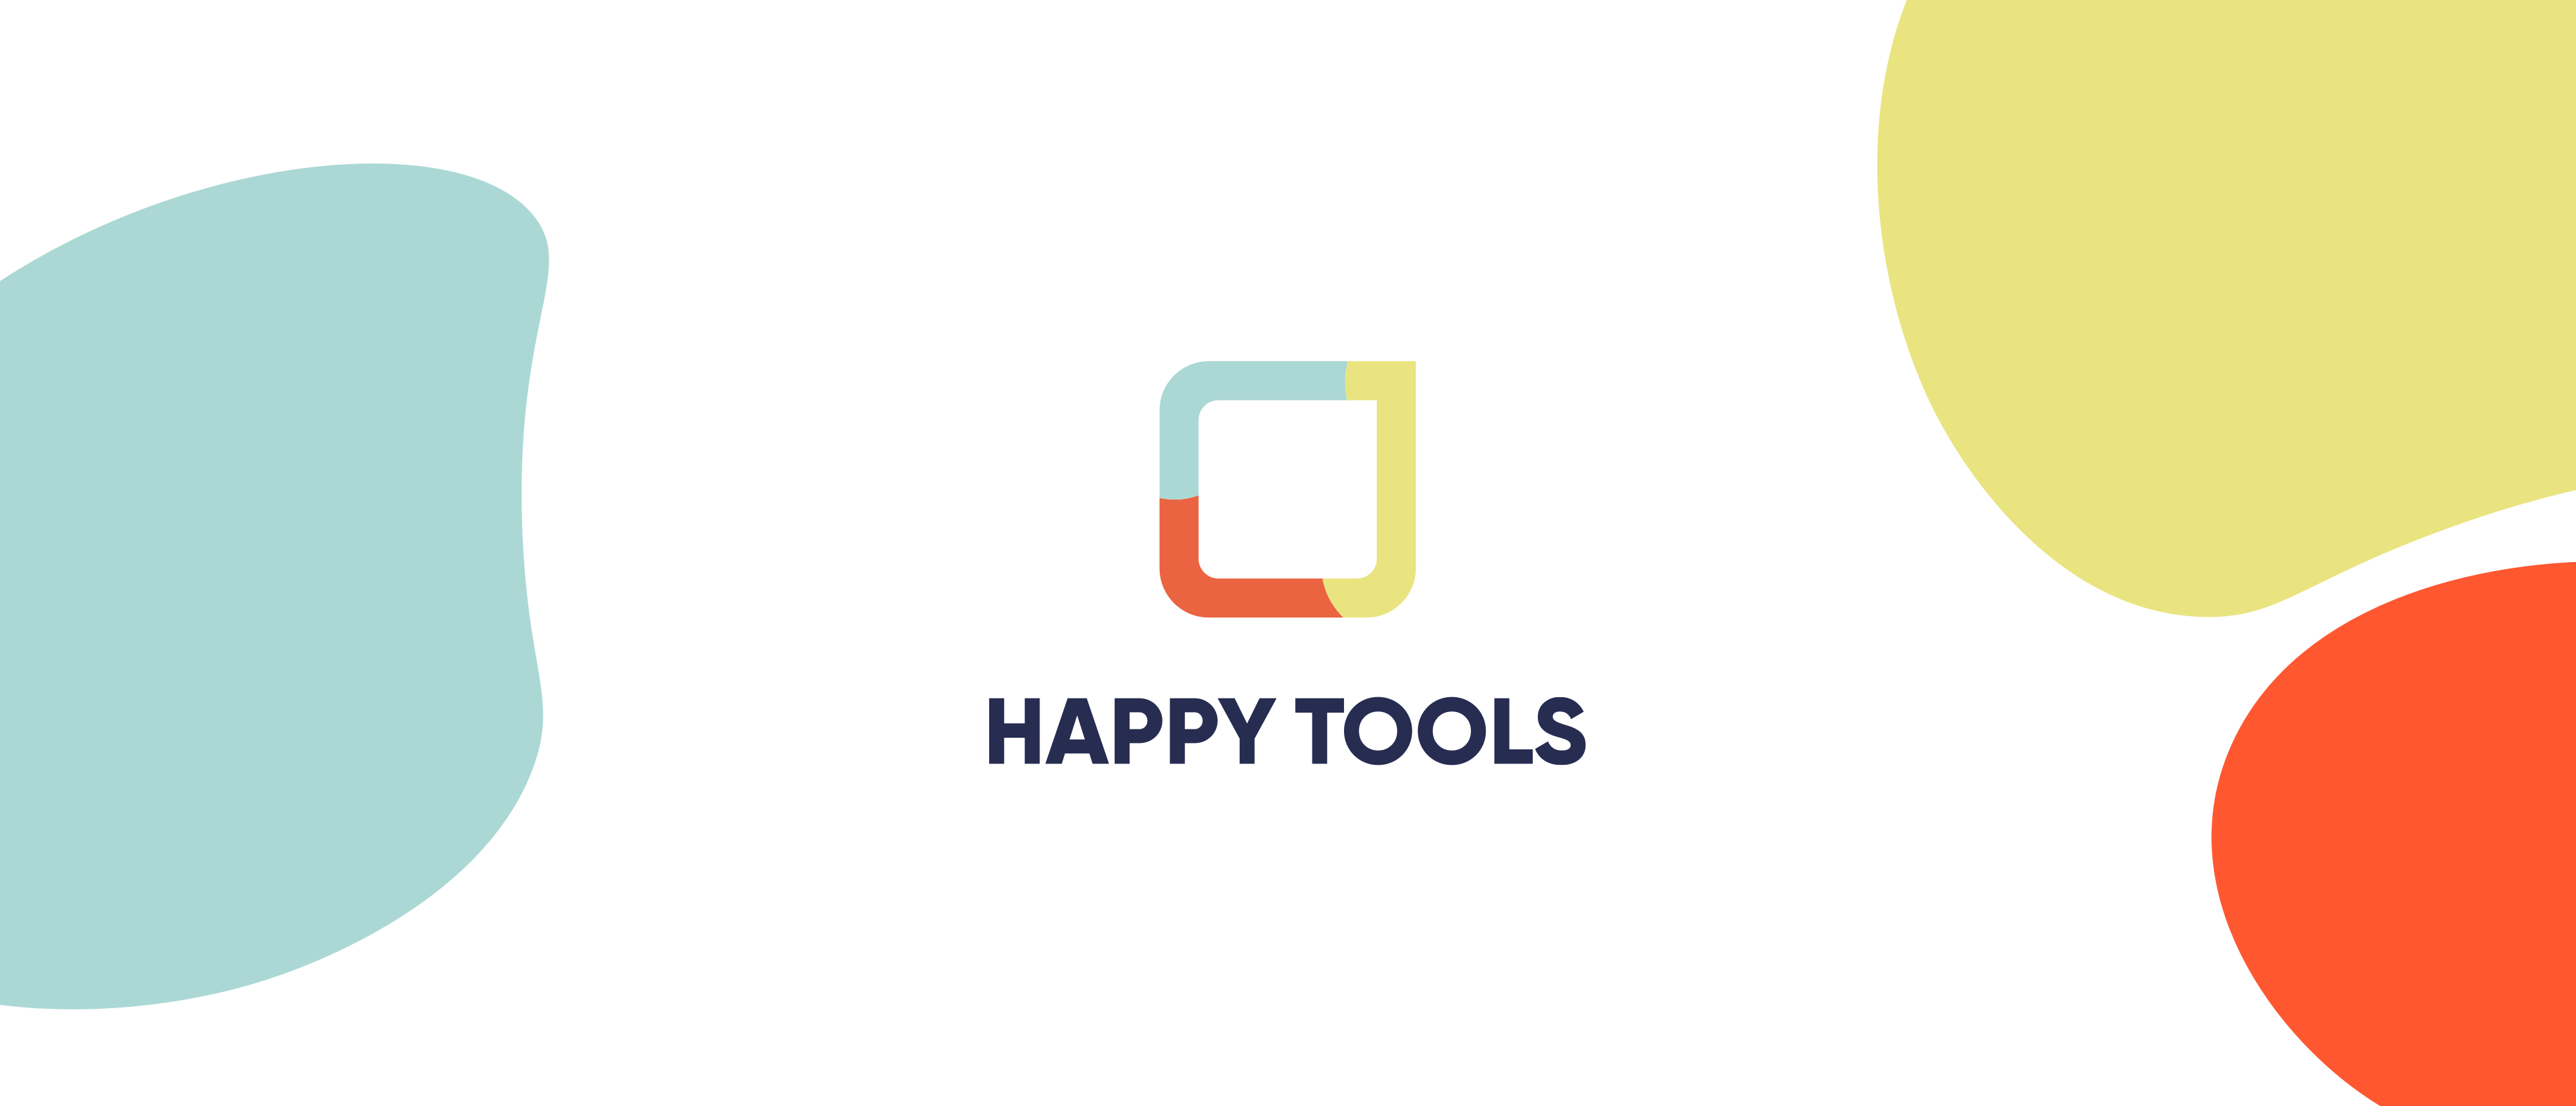 WordPress.com's Parent Company Announces Happy Tools, a New Suite of Products for the Future of Work